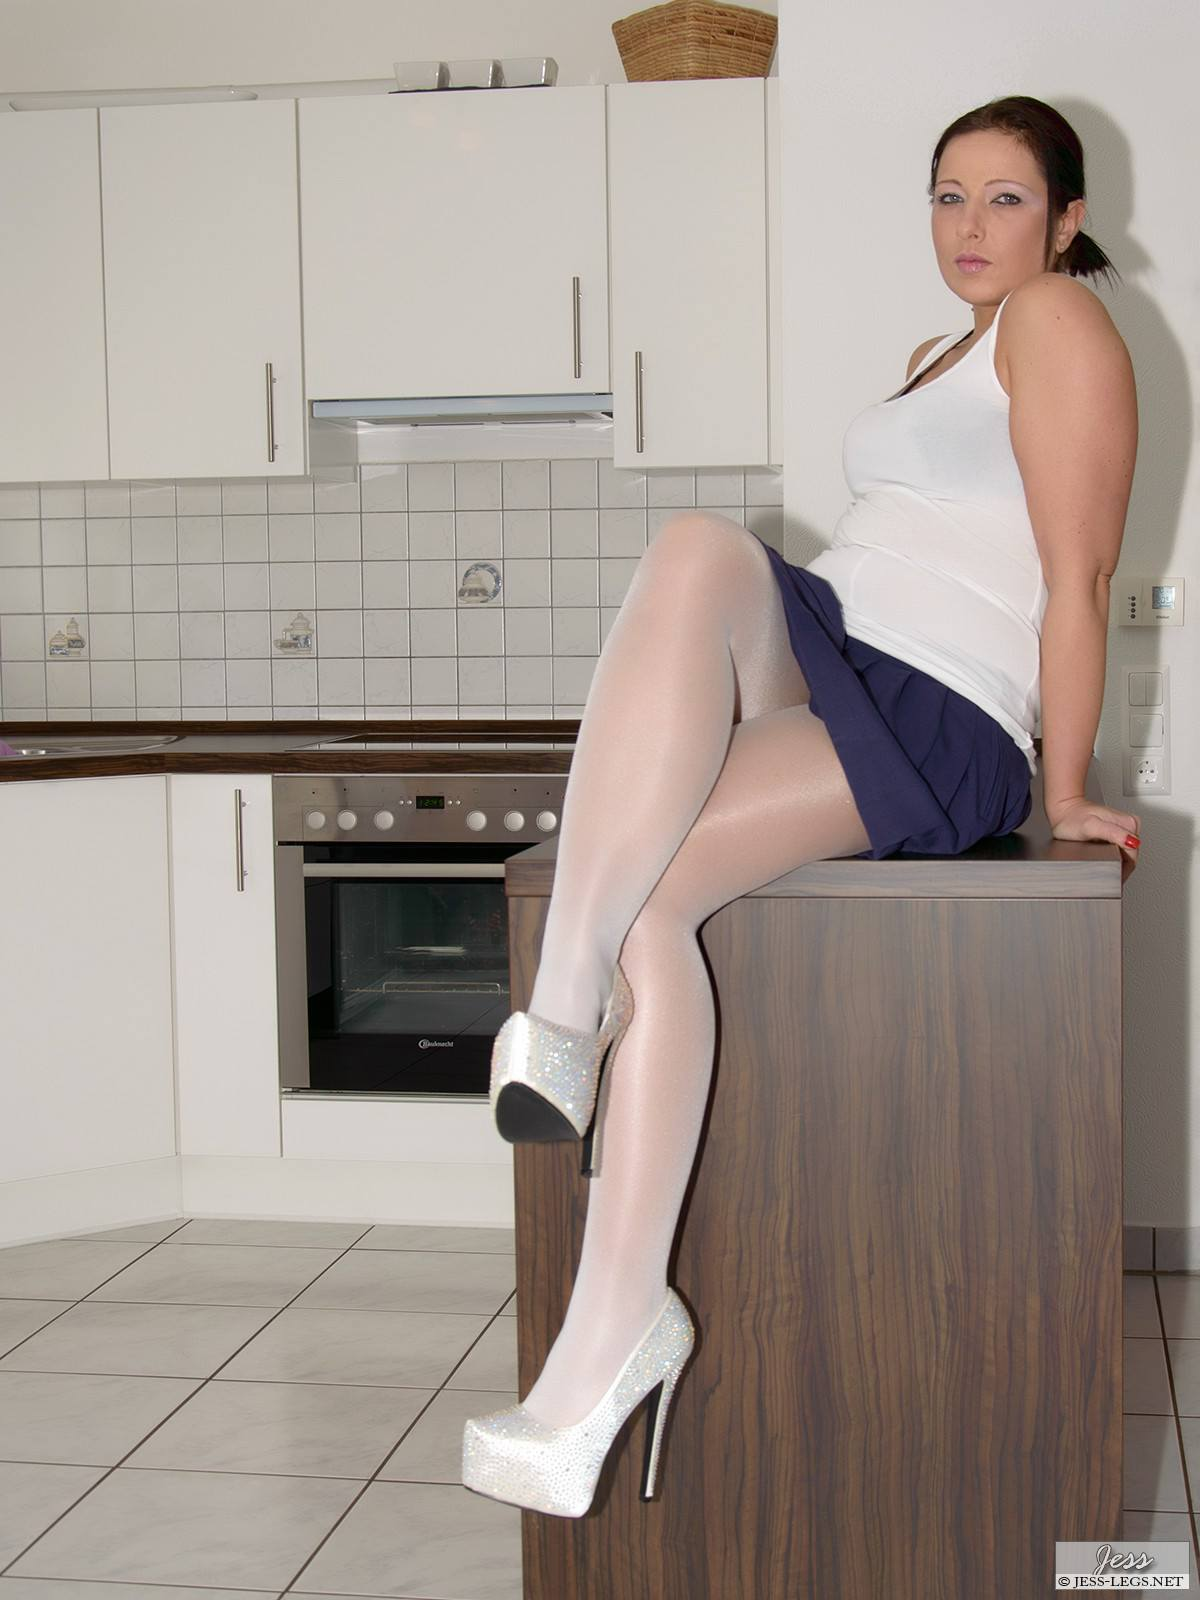 Pantyhose legs and skirts